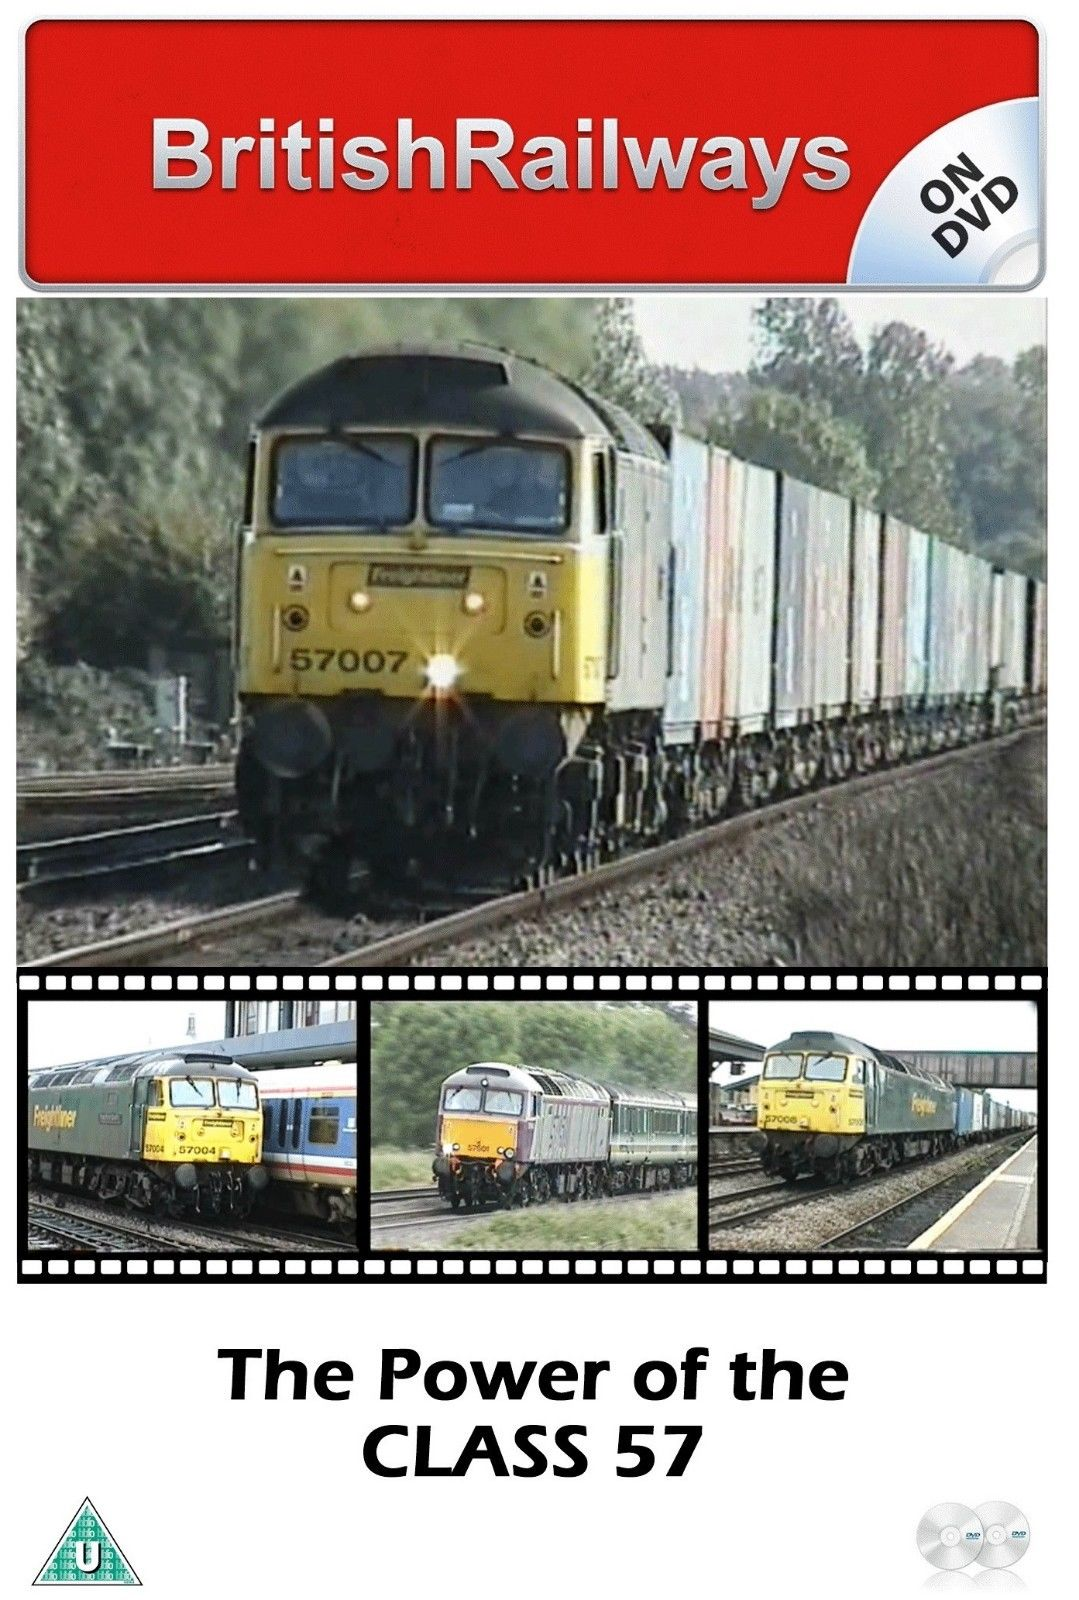 The Power of the Class 57